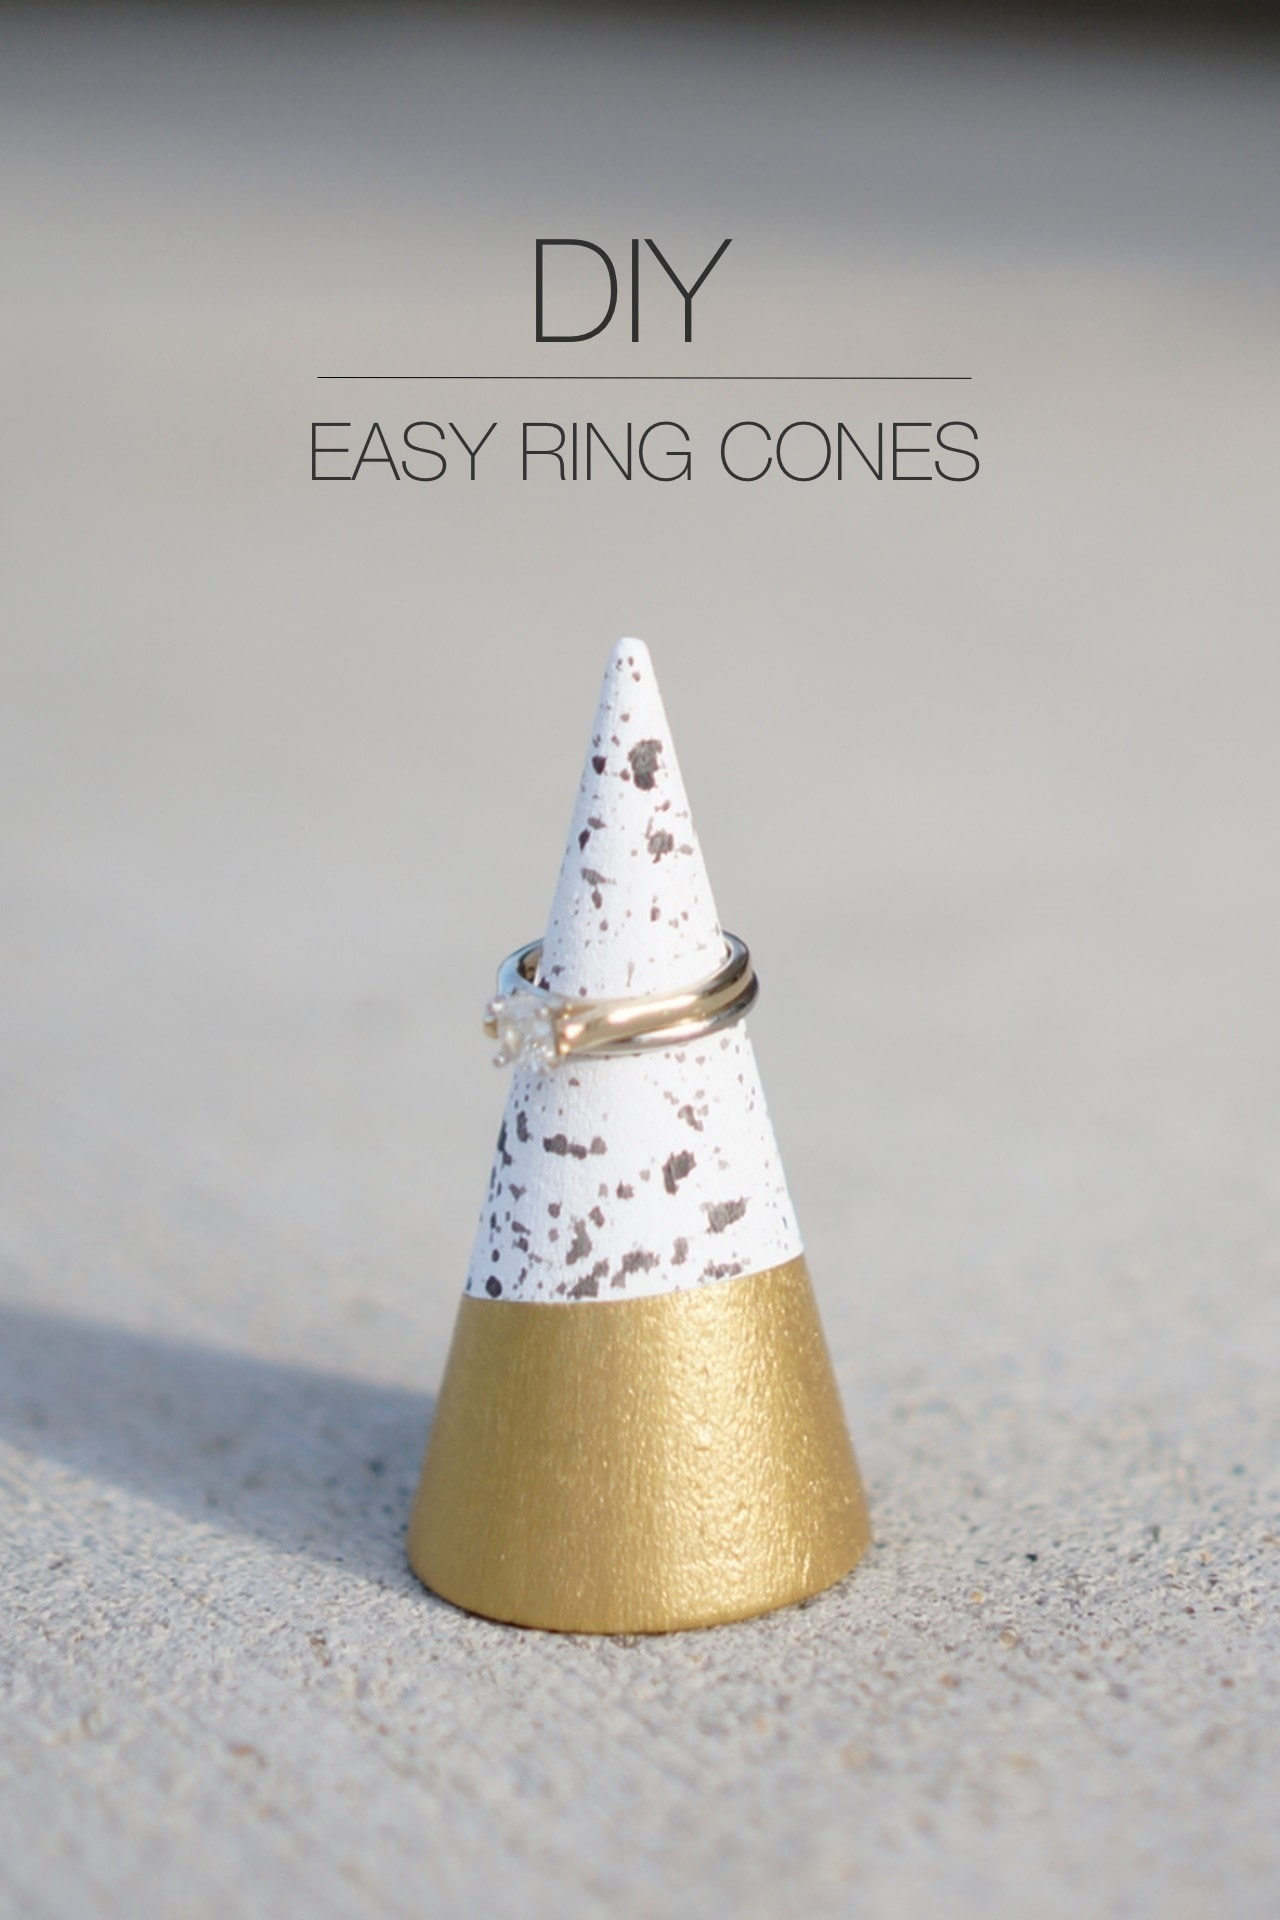 Pretty DIY Cones For Storing And Displaying Your Rings images